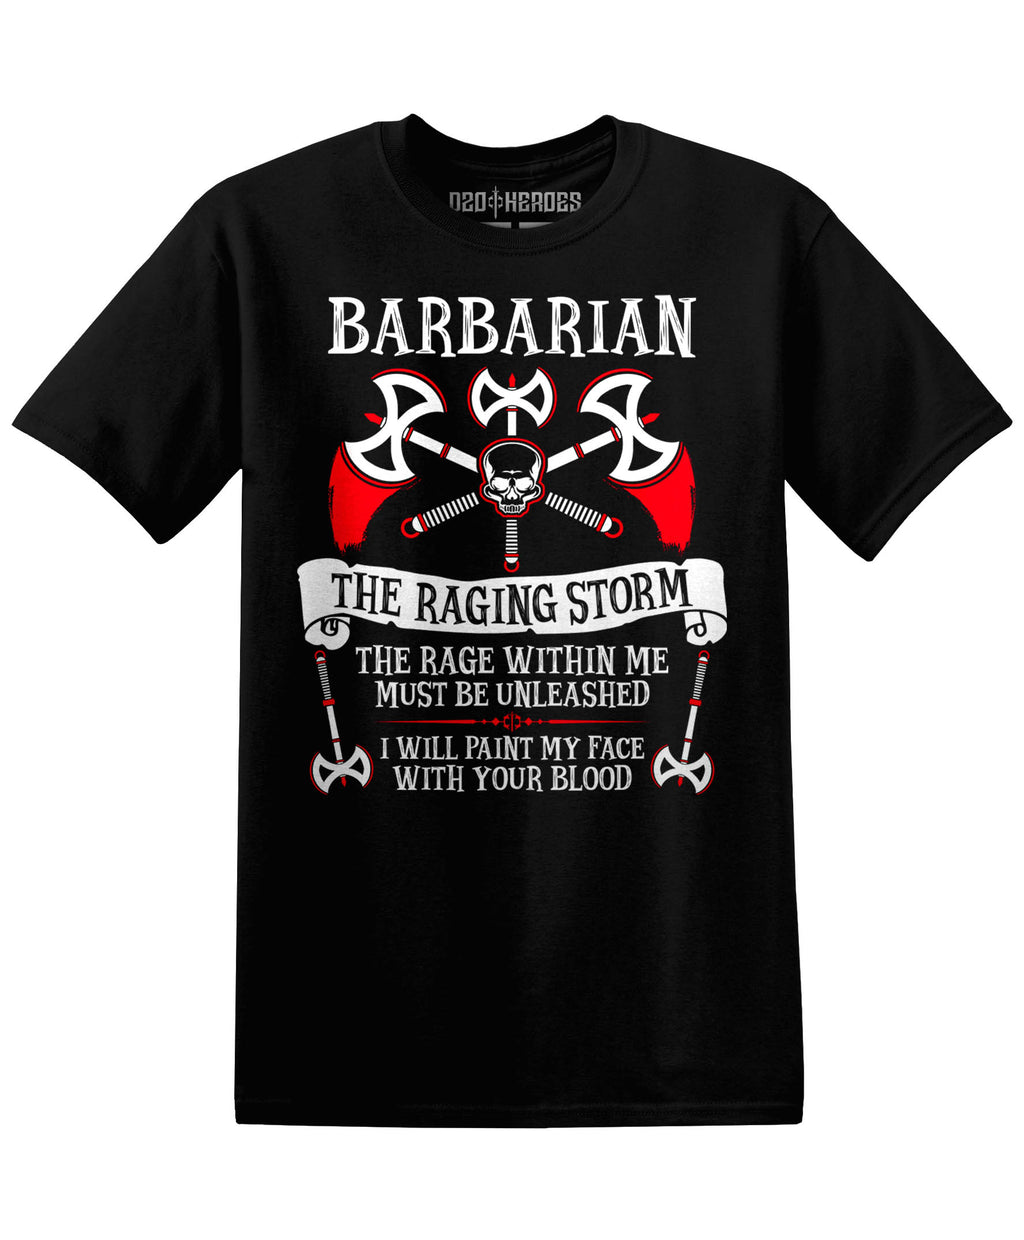 Barbarian : The Raging Storm - T-Shirt - D20 Heroes / Dungeons and Dragons and Fantasy Clothing and Merchandise